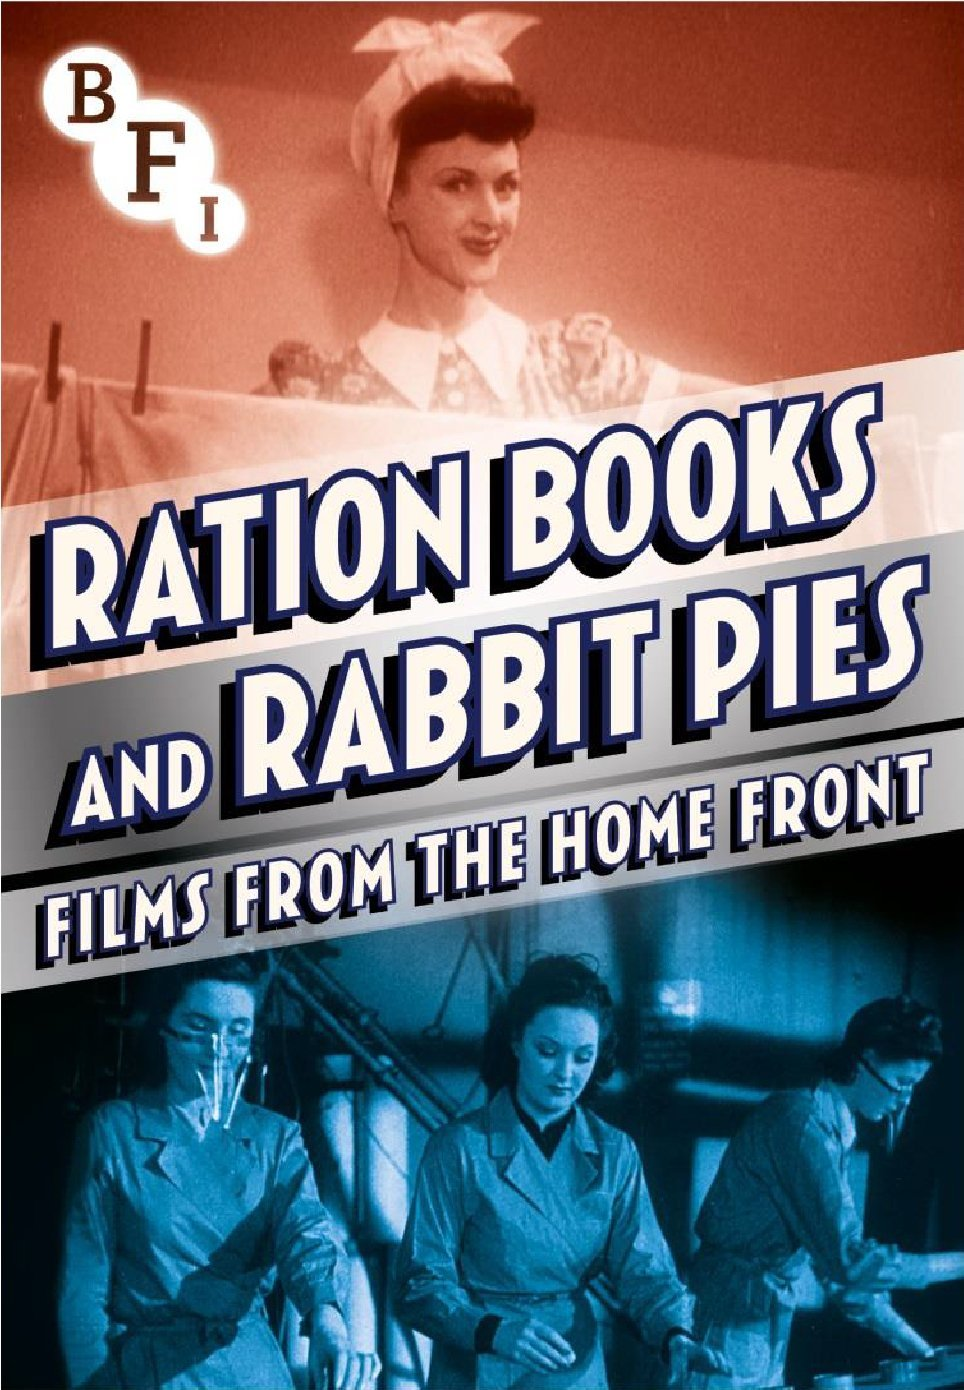 Buy Ration Books and Rabbit Pies: Films from the Home Front